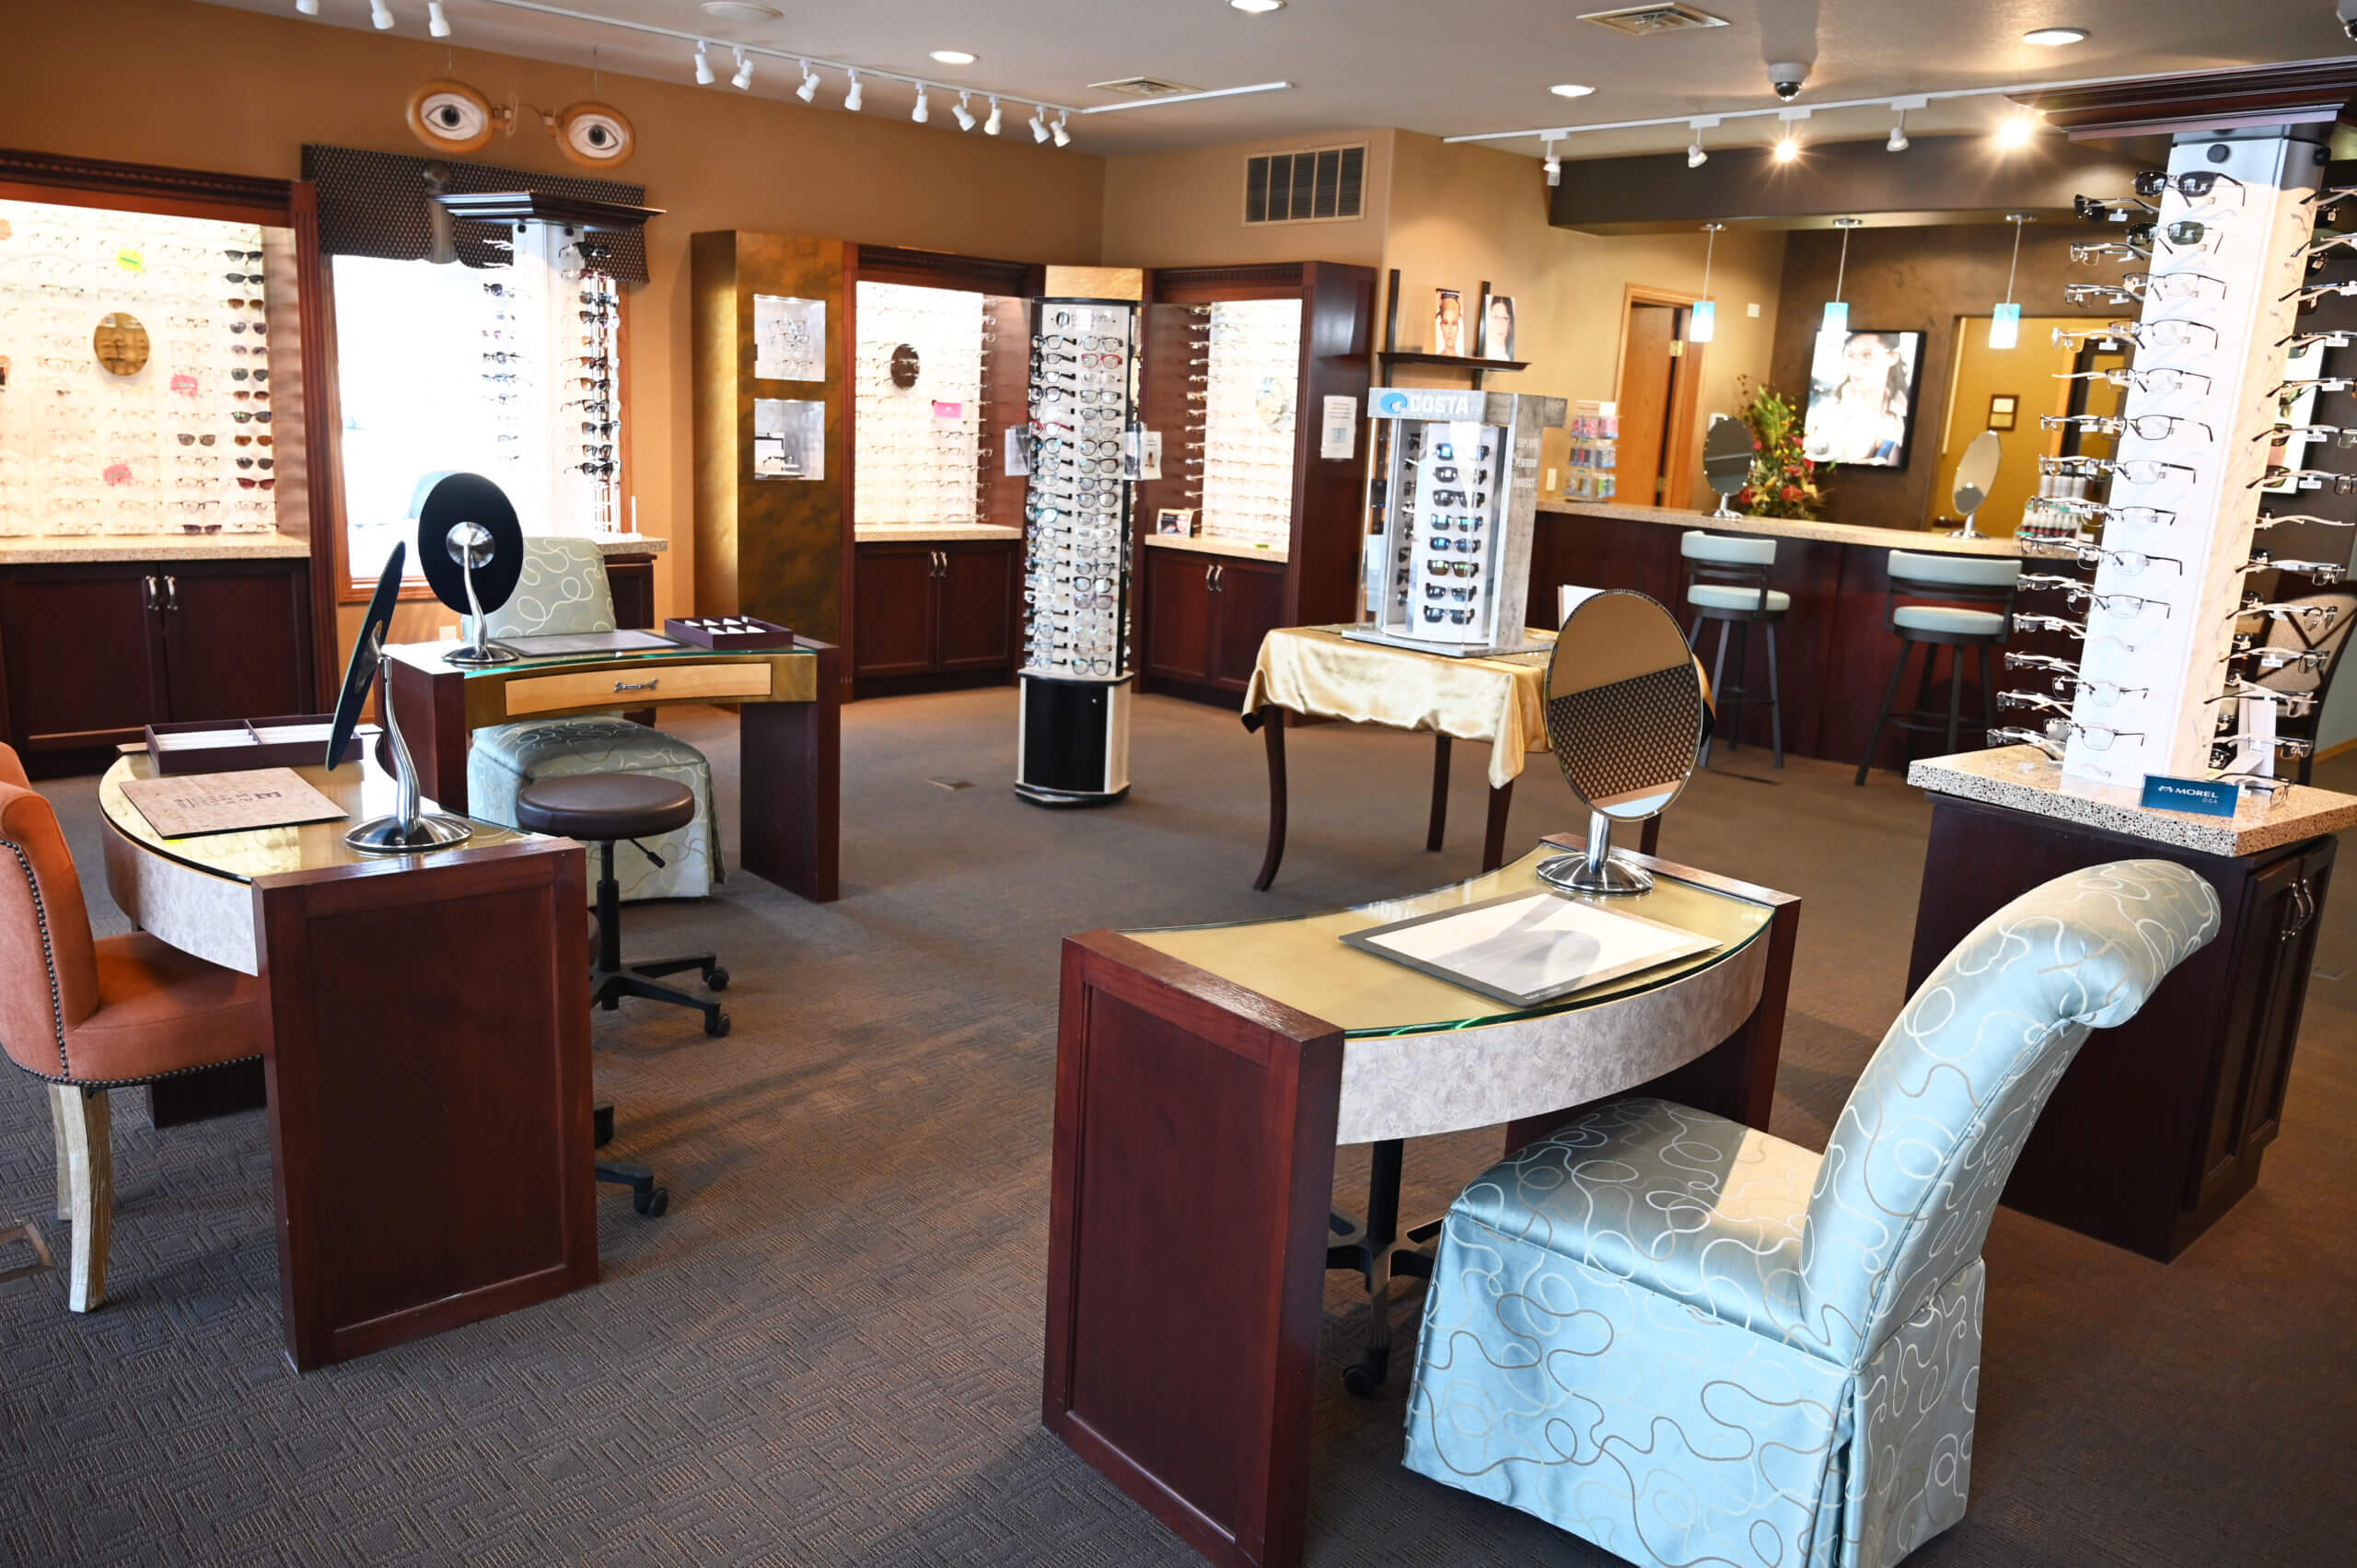 Weiss Eyecare Clinic in Watertown South Dakota has an excellent selection of eye glasses